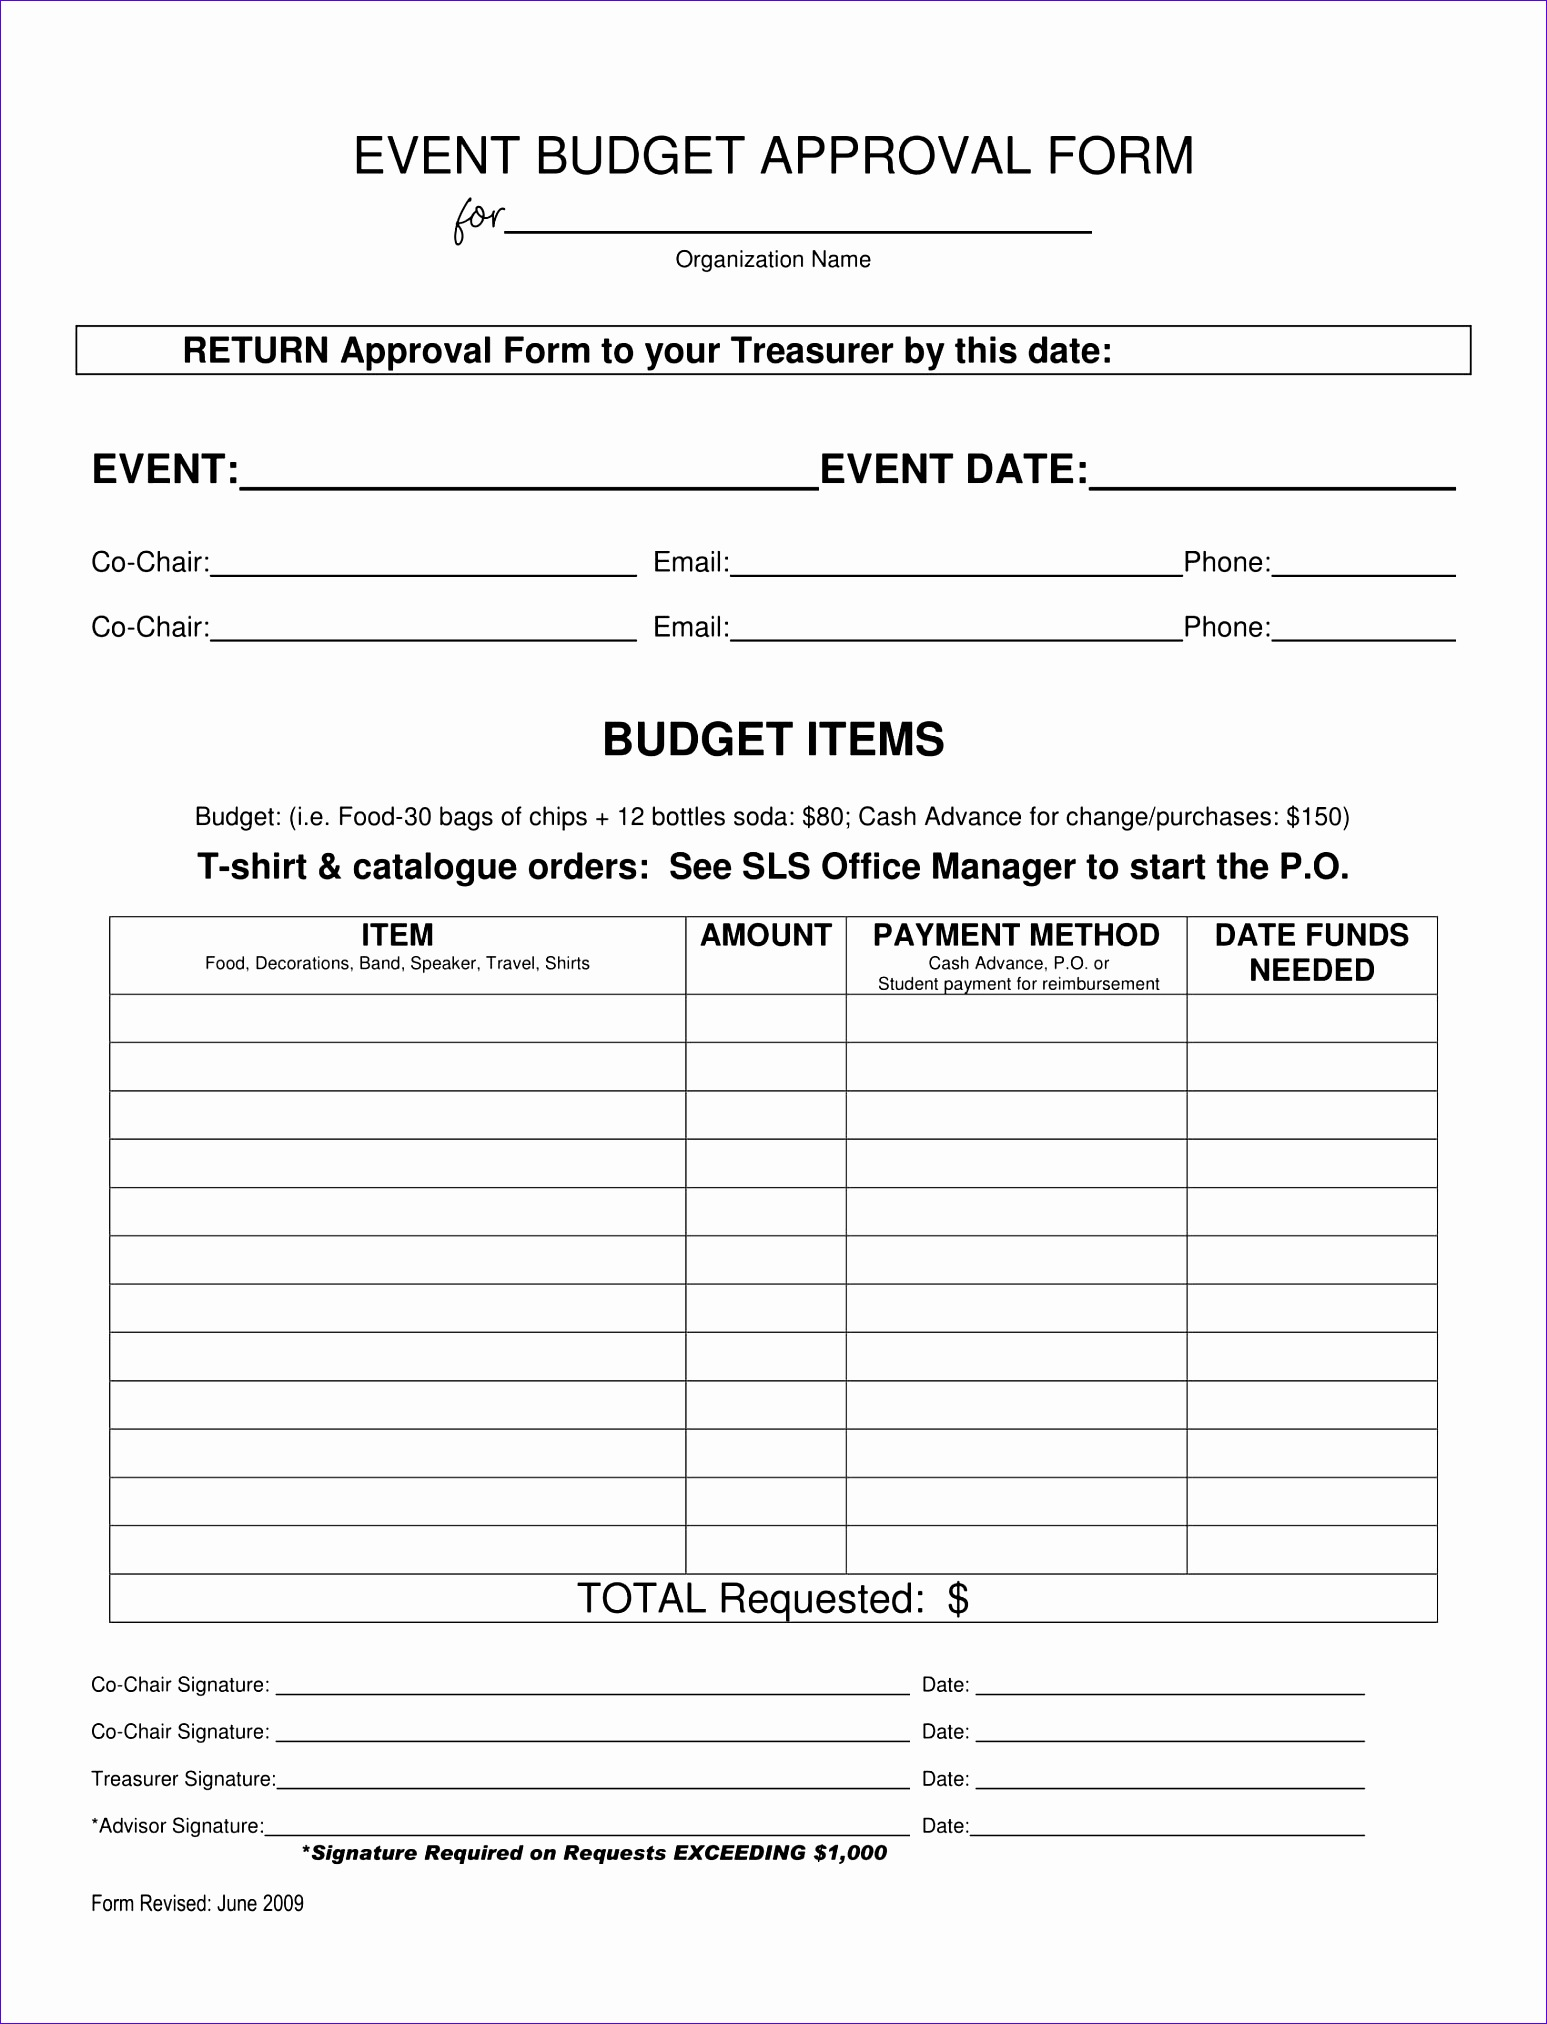 Event Bud Approval Form 1